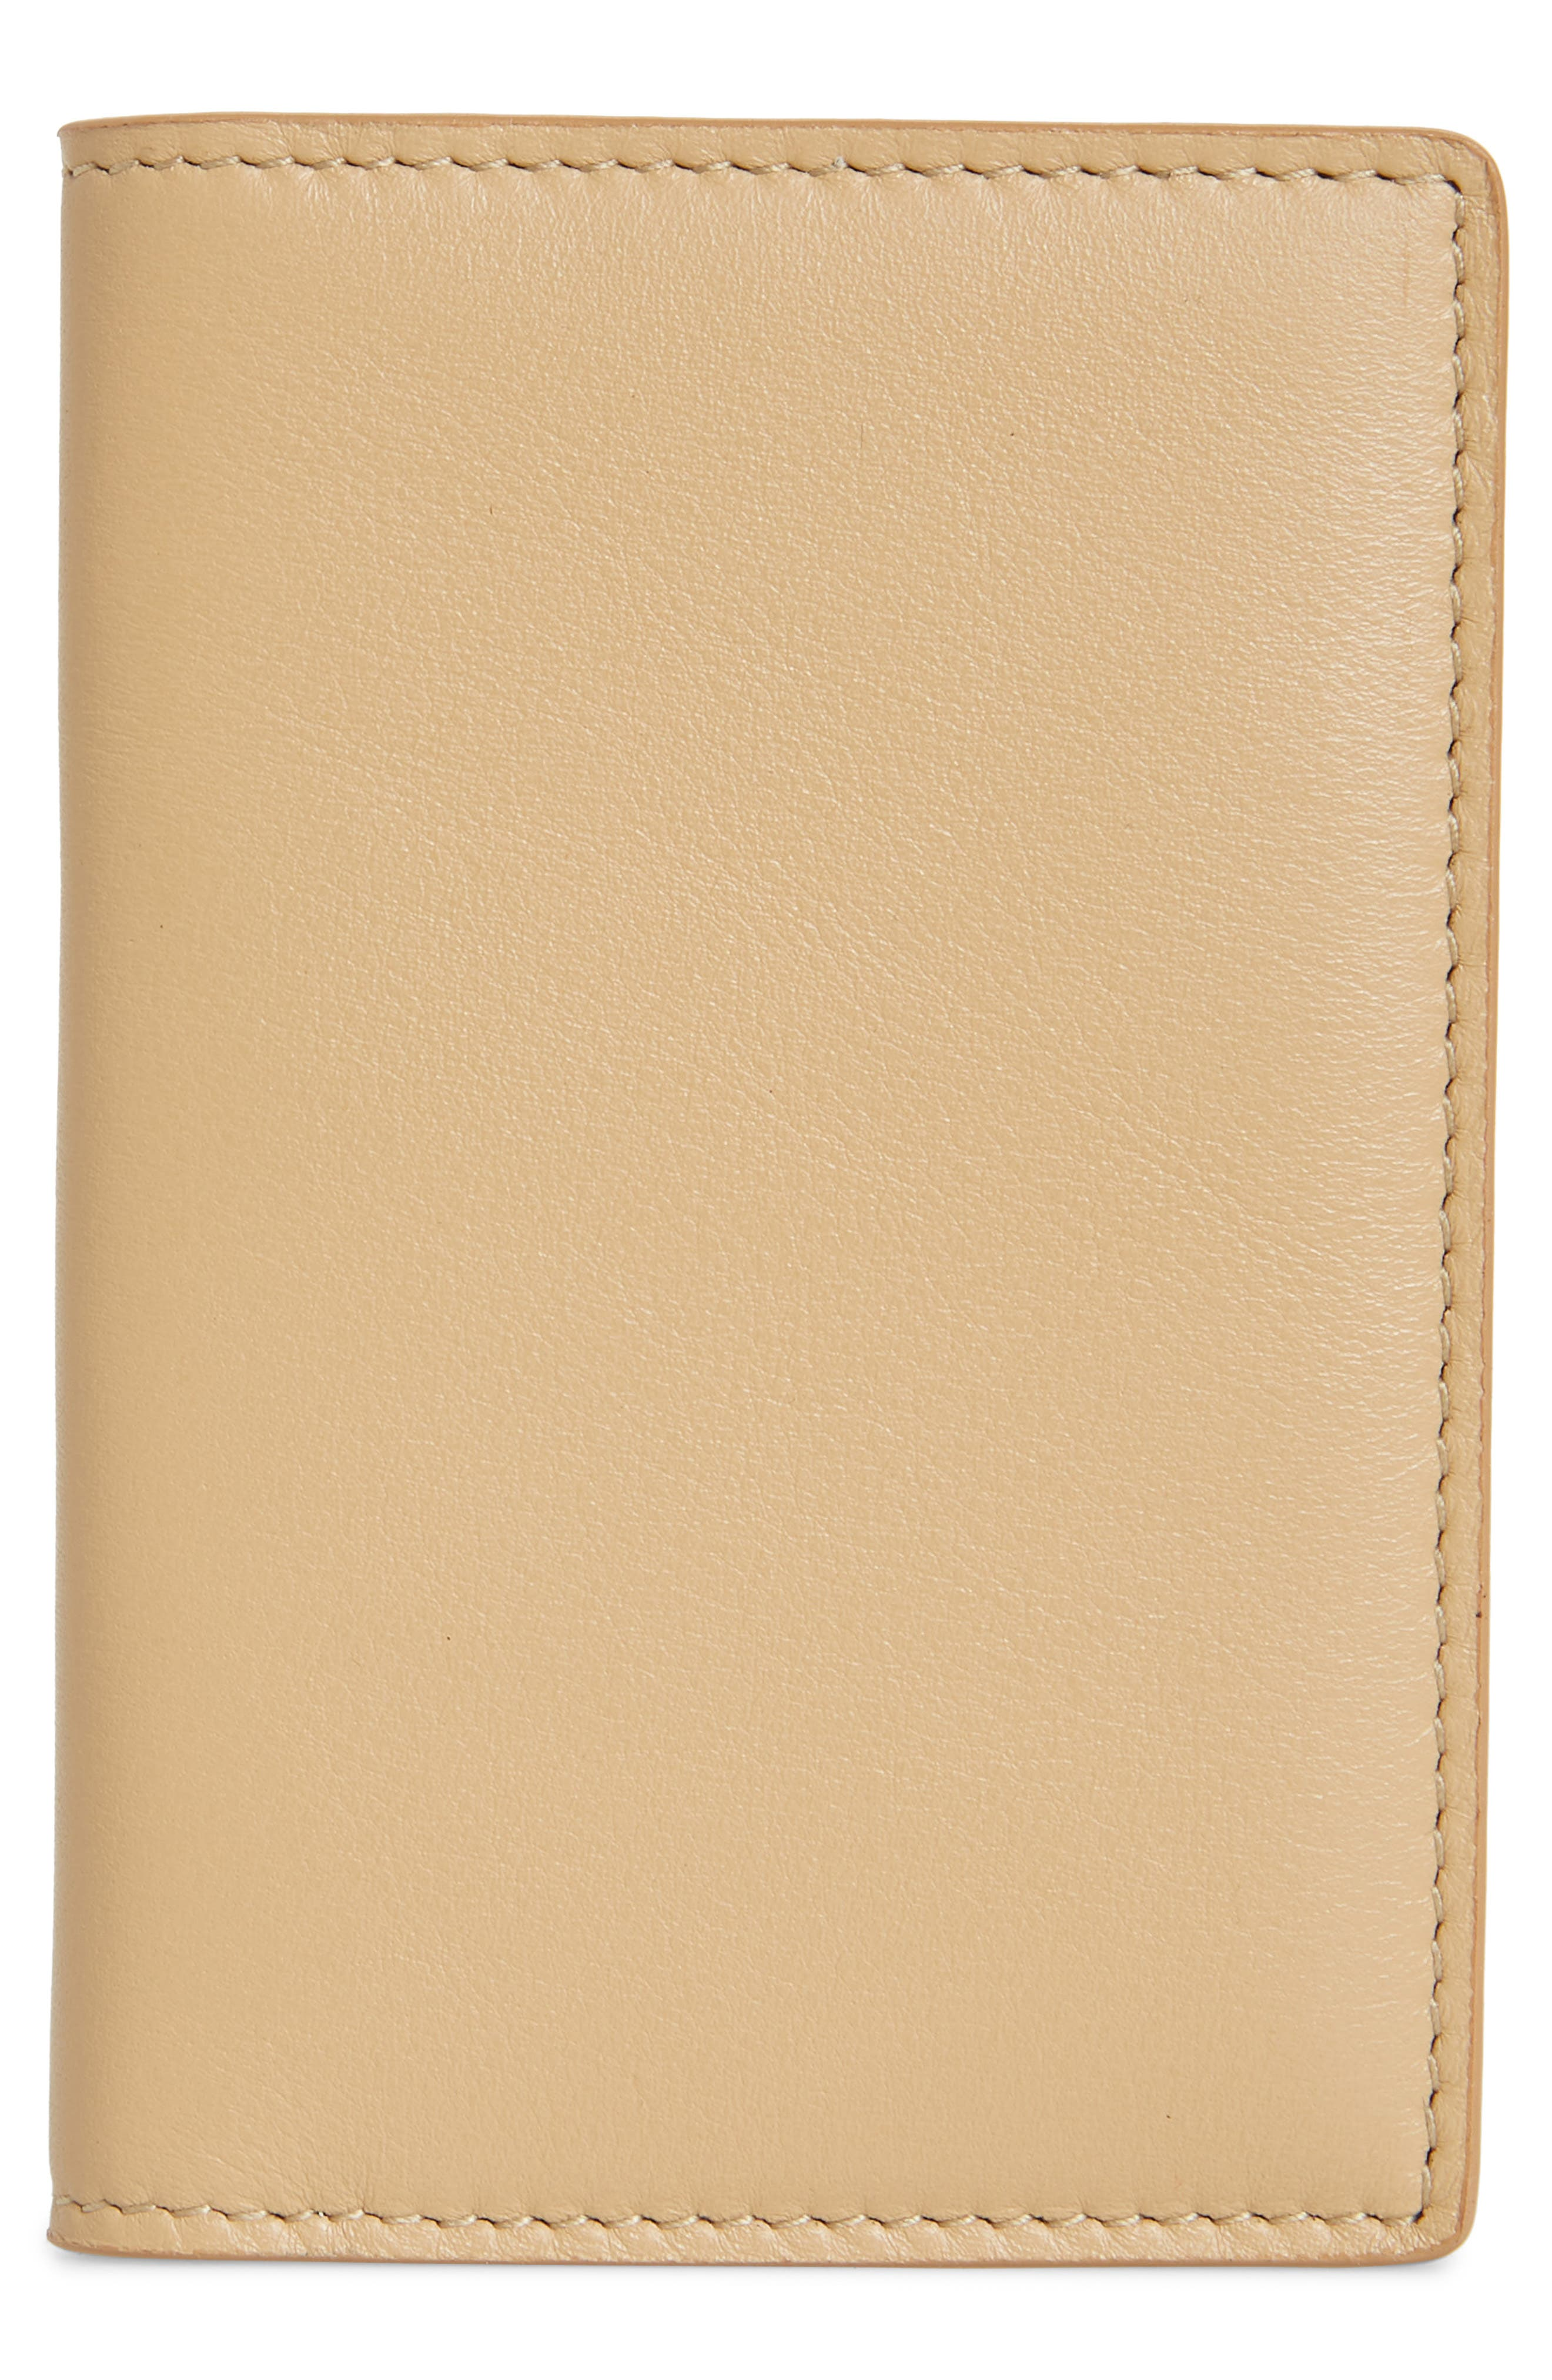 COMMON PROJECTS, Nappa Leather Folio Wallet, Alternate thumbnail 3, color, 250